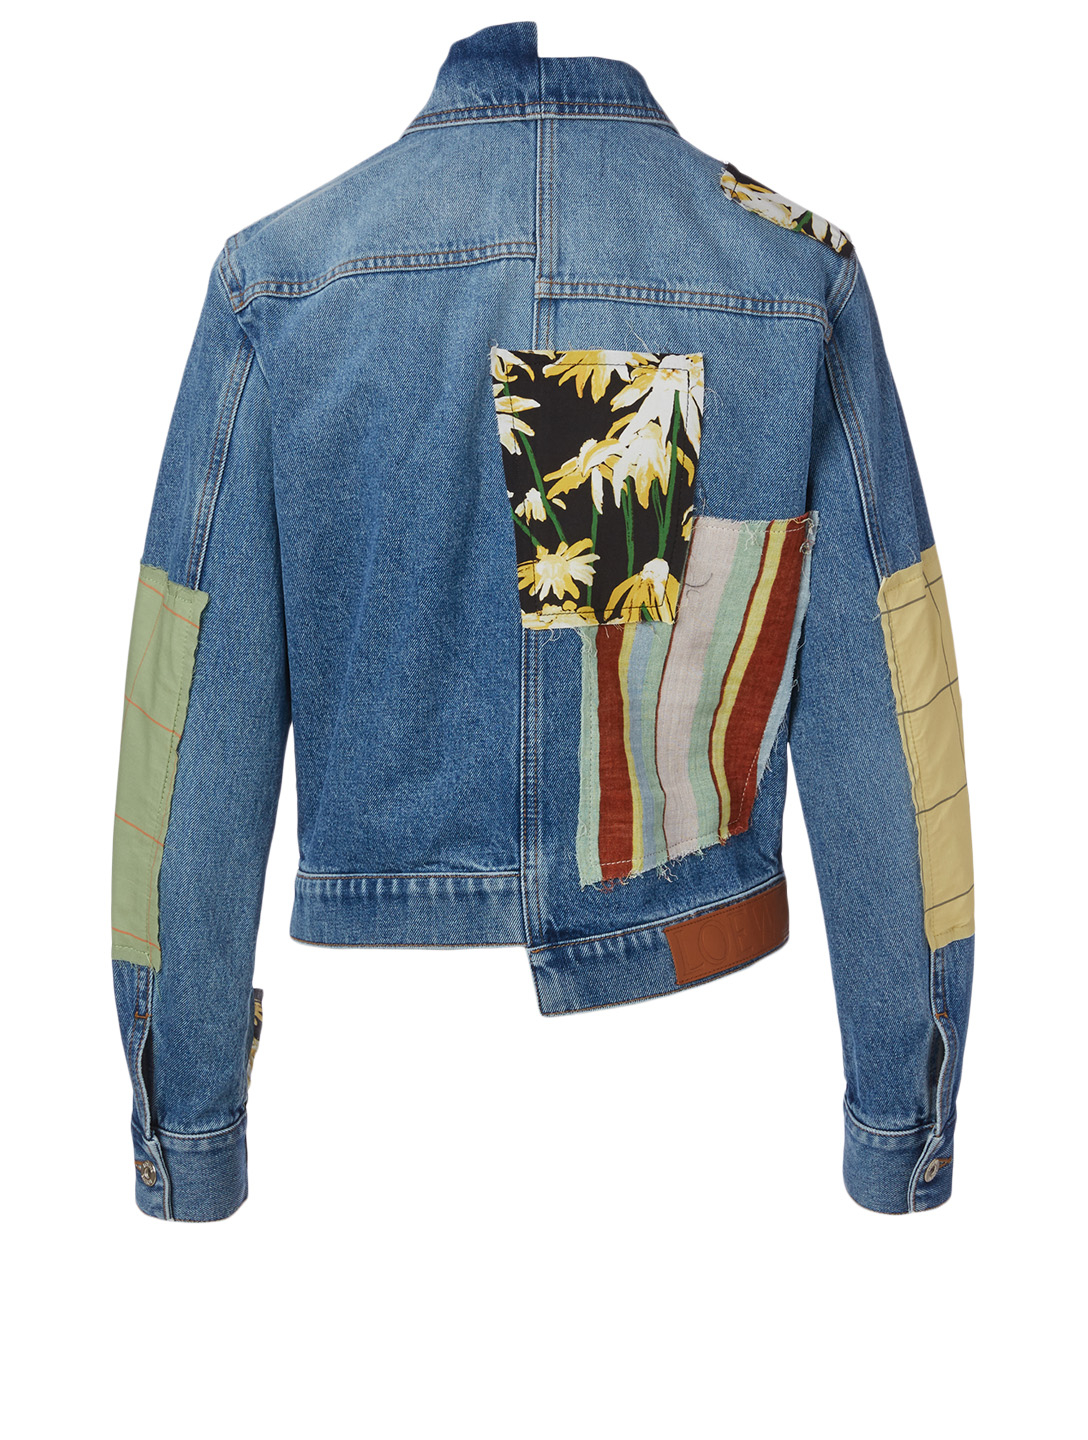 LOEWE Patchwork Denim Jacket Women's Blue